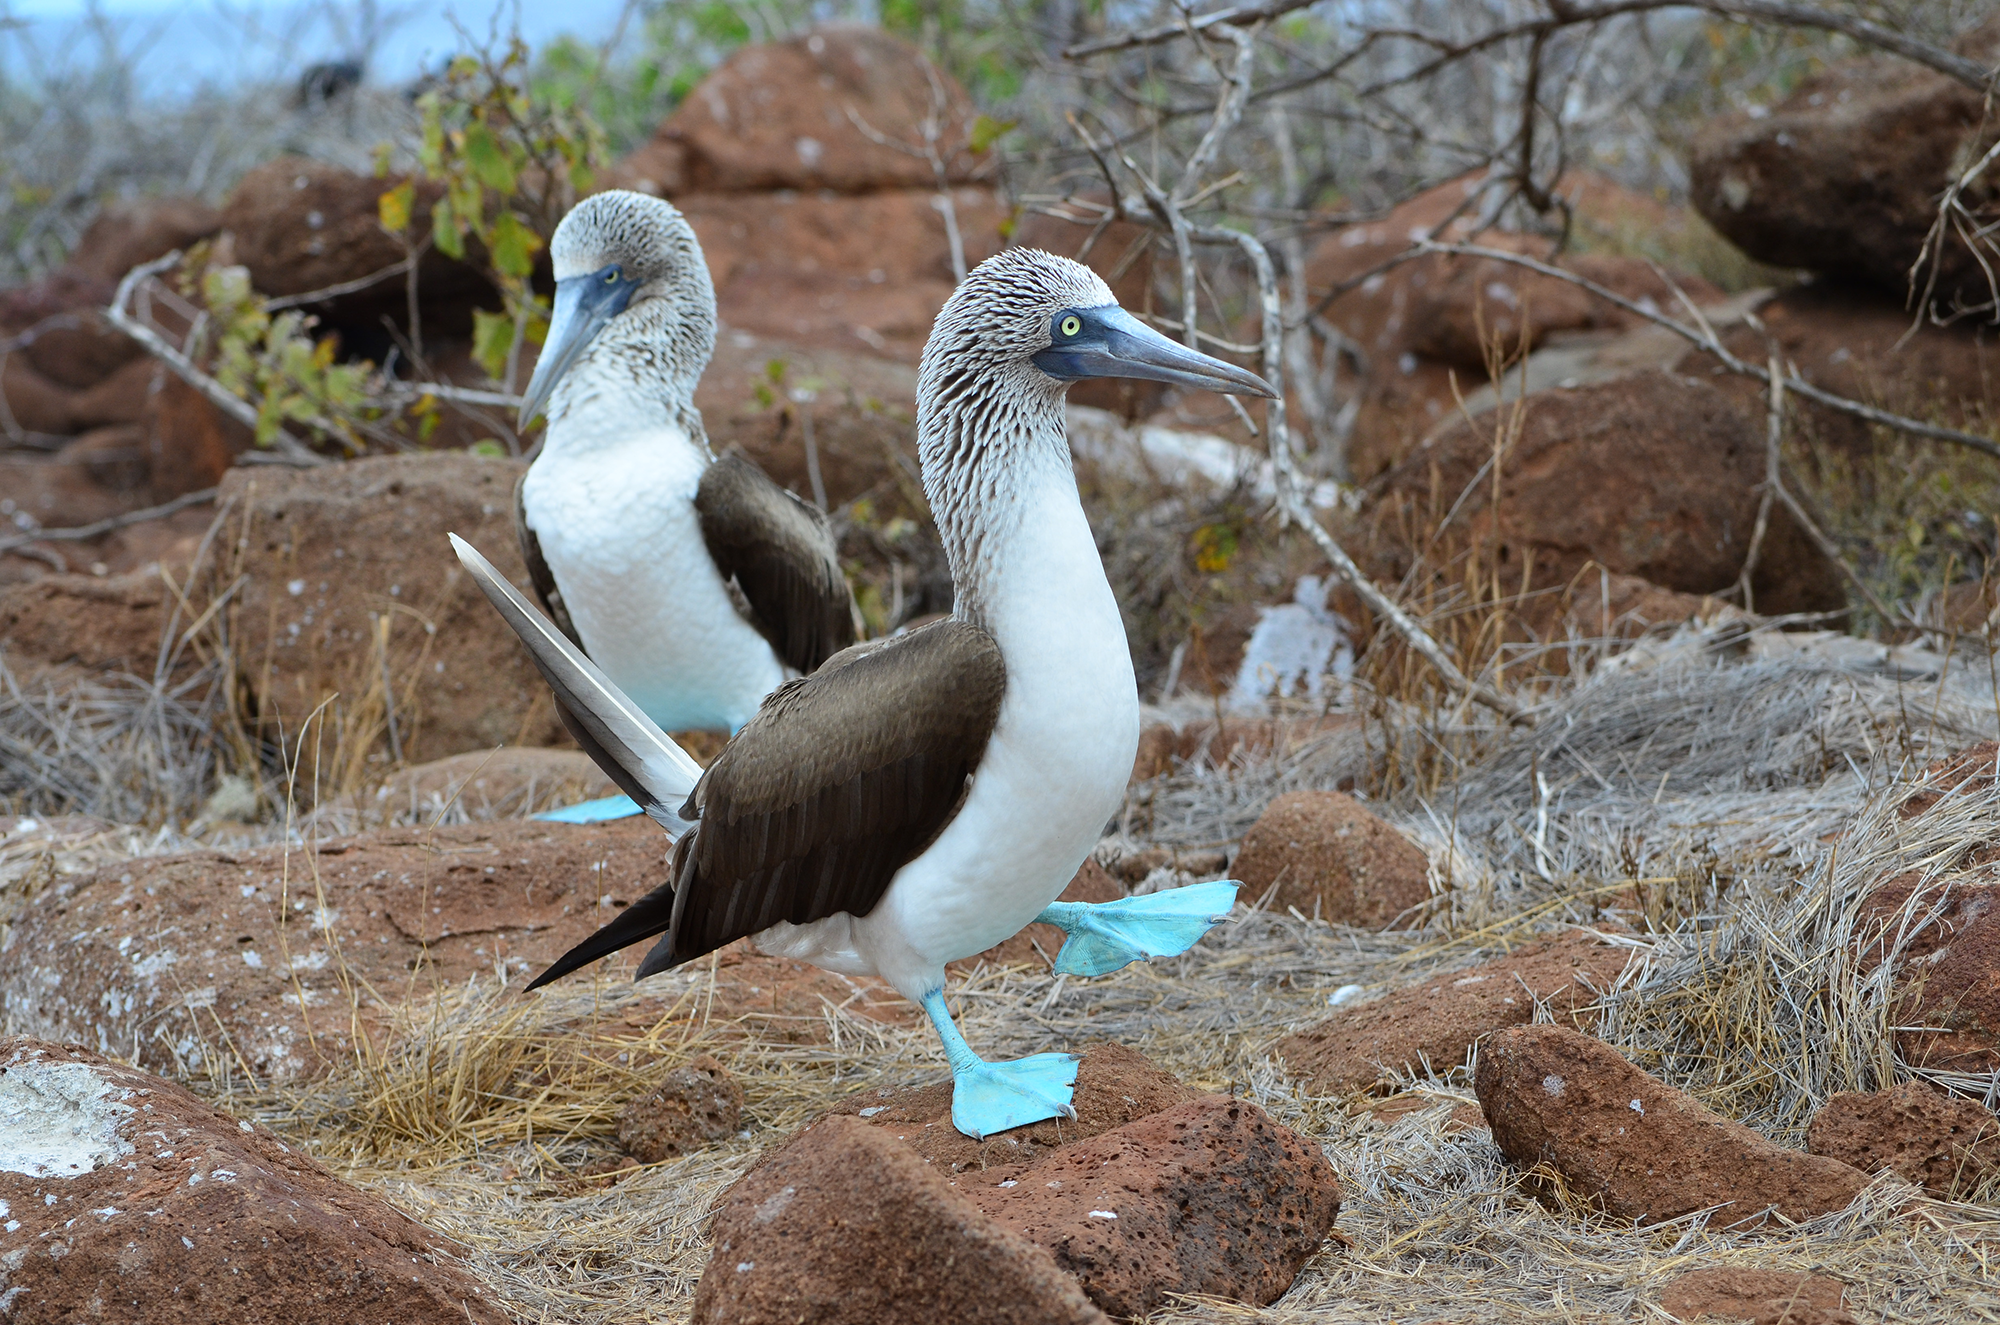 Blue-footed boobies. Credit: Paul Krawczuk/Flickr CC.